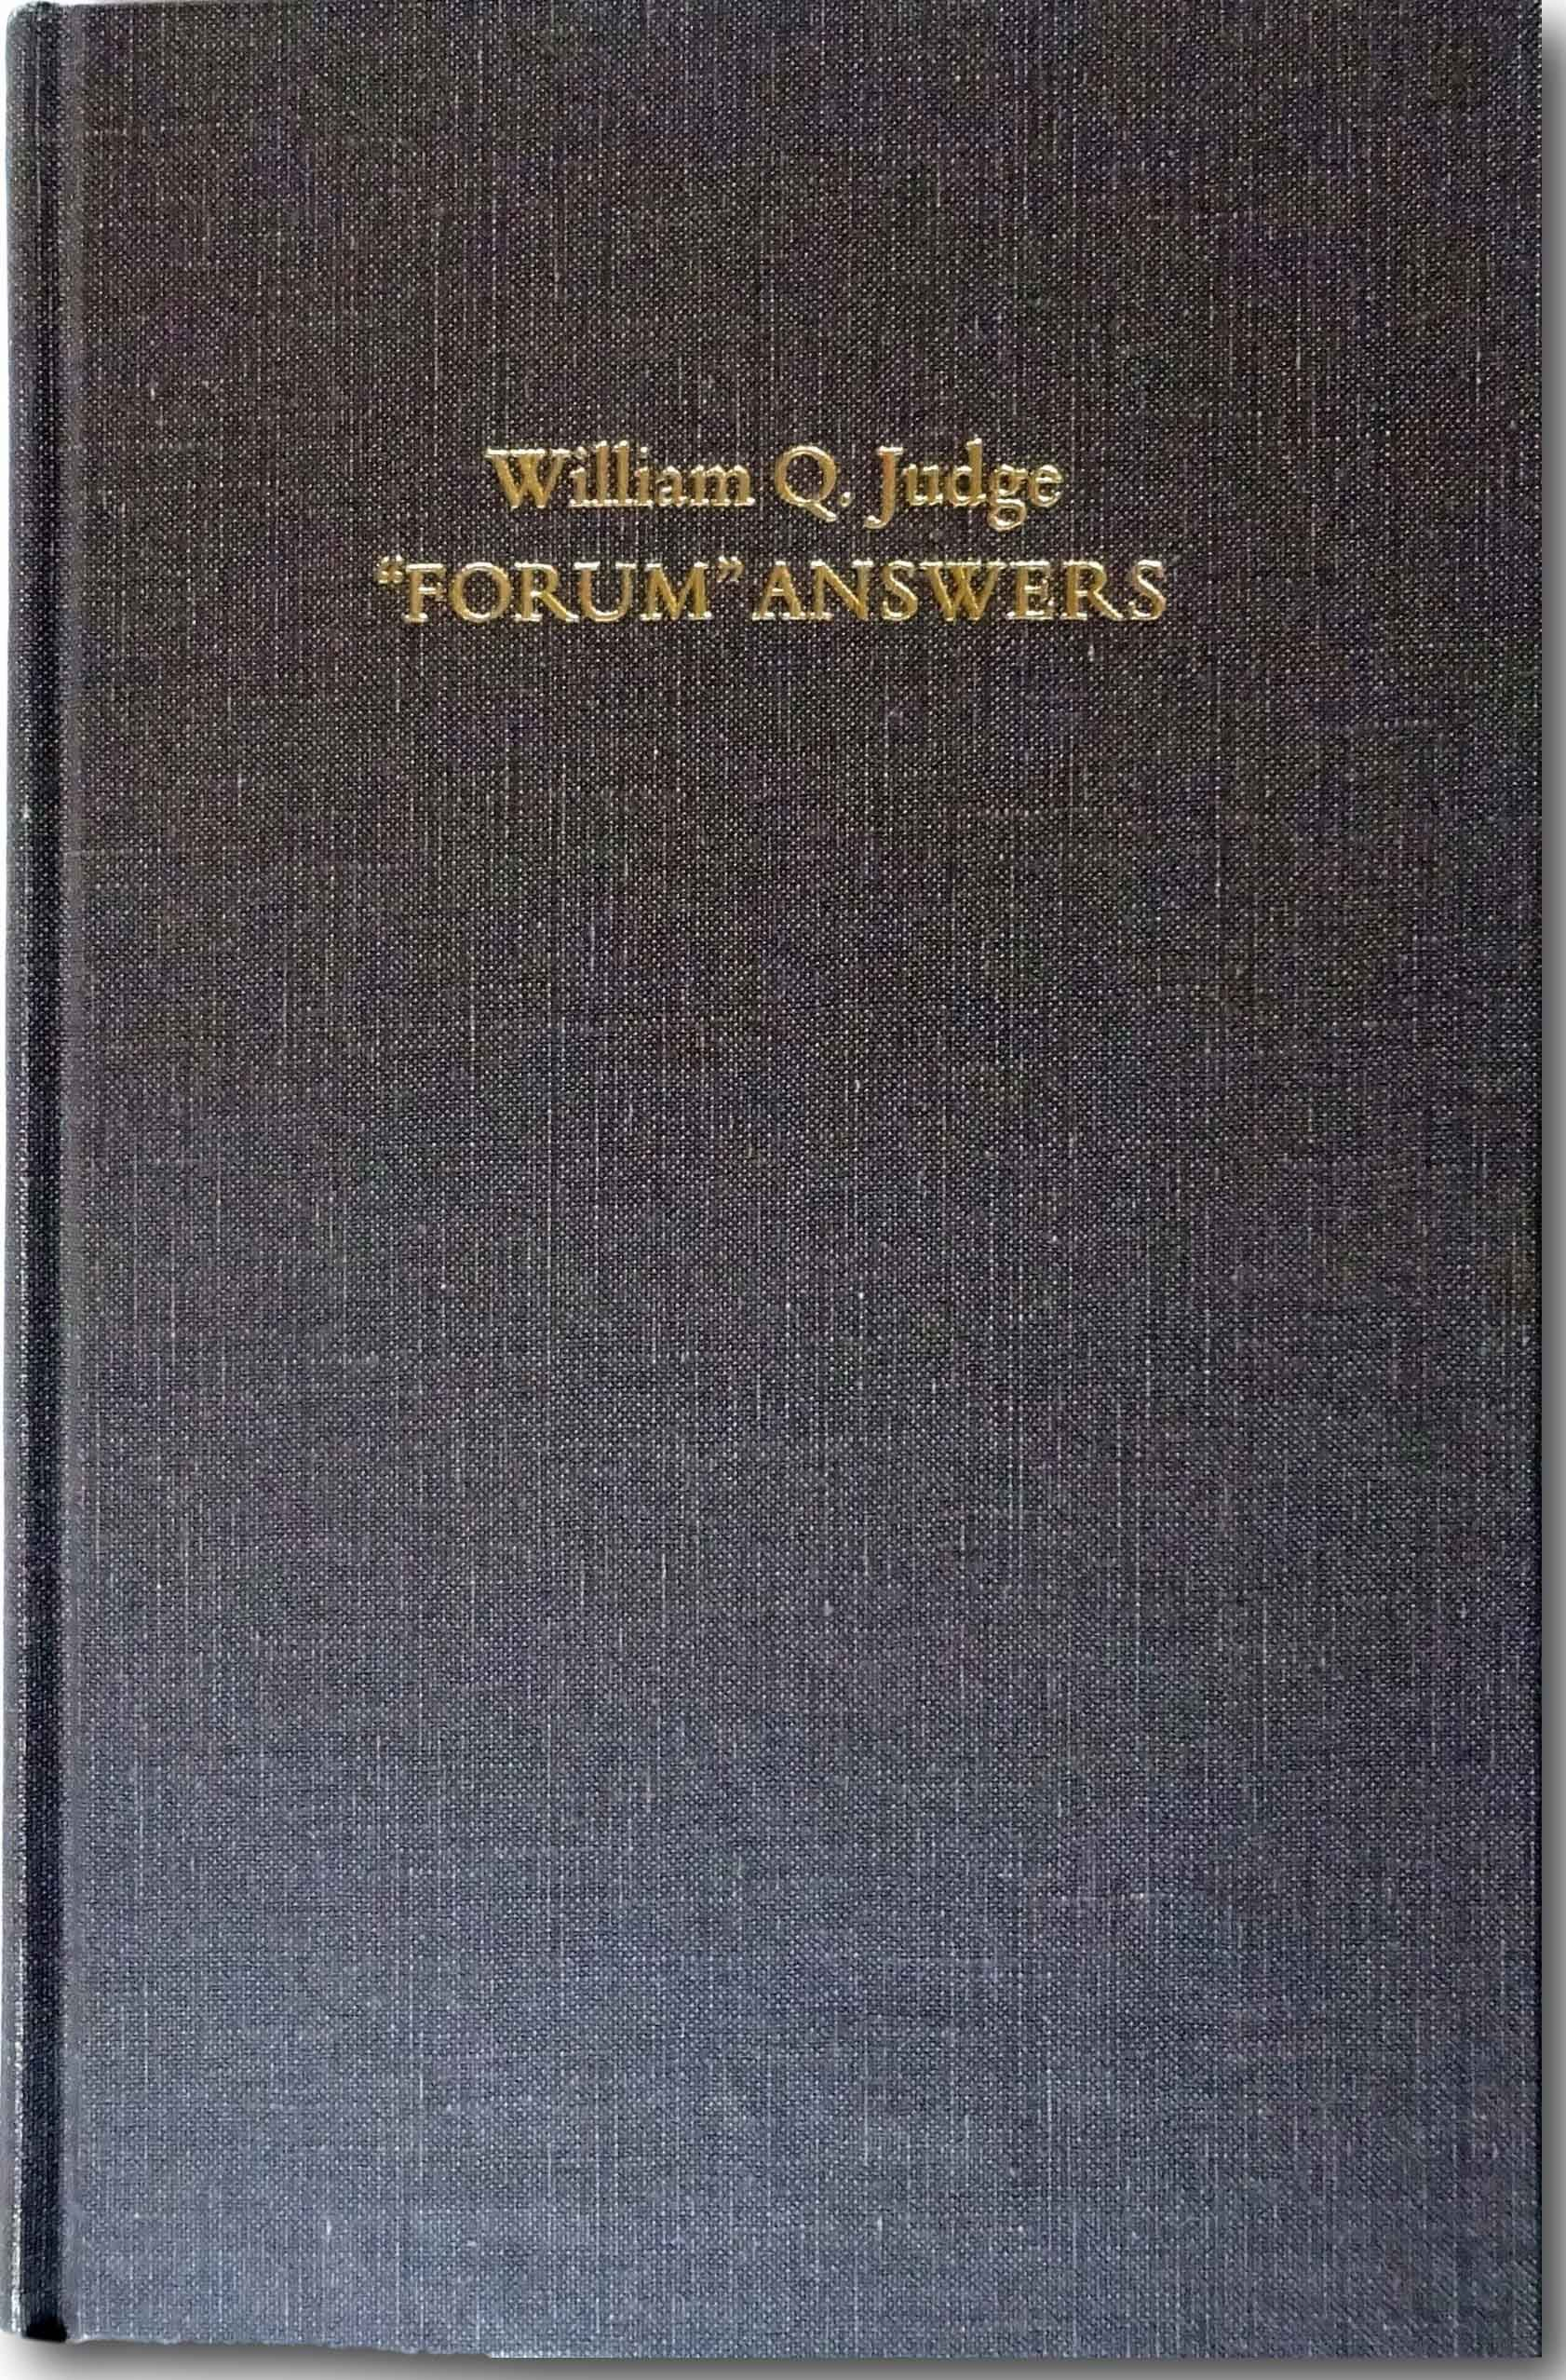 Forum Answers by William Q Judge